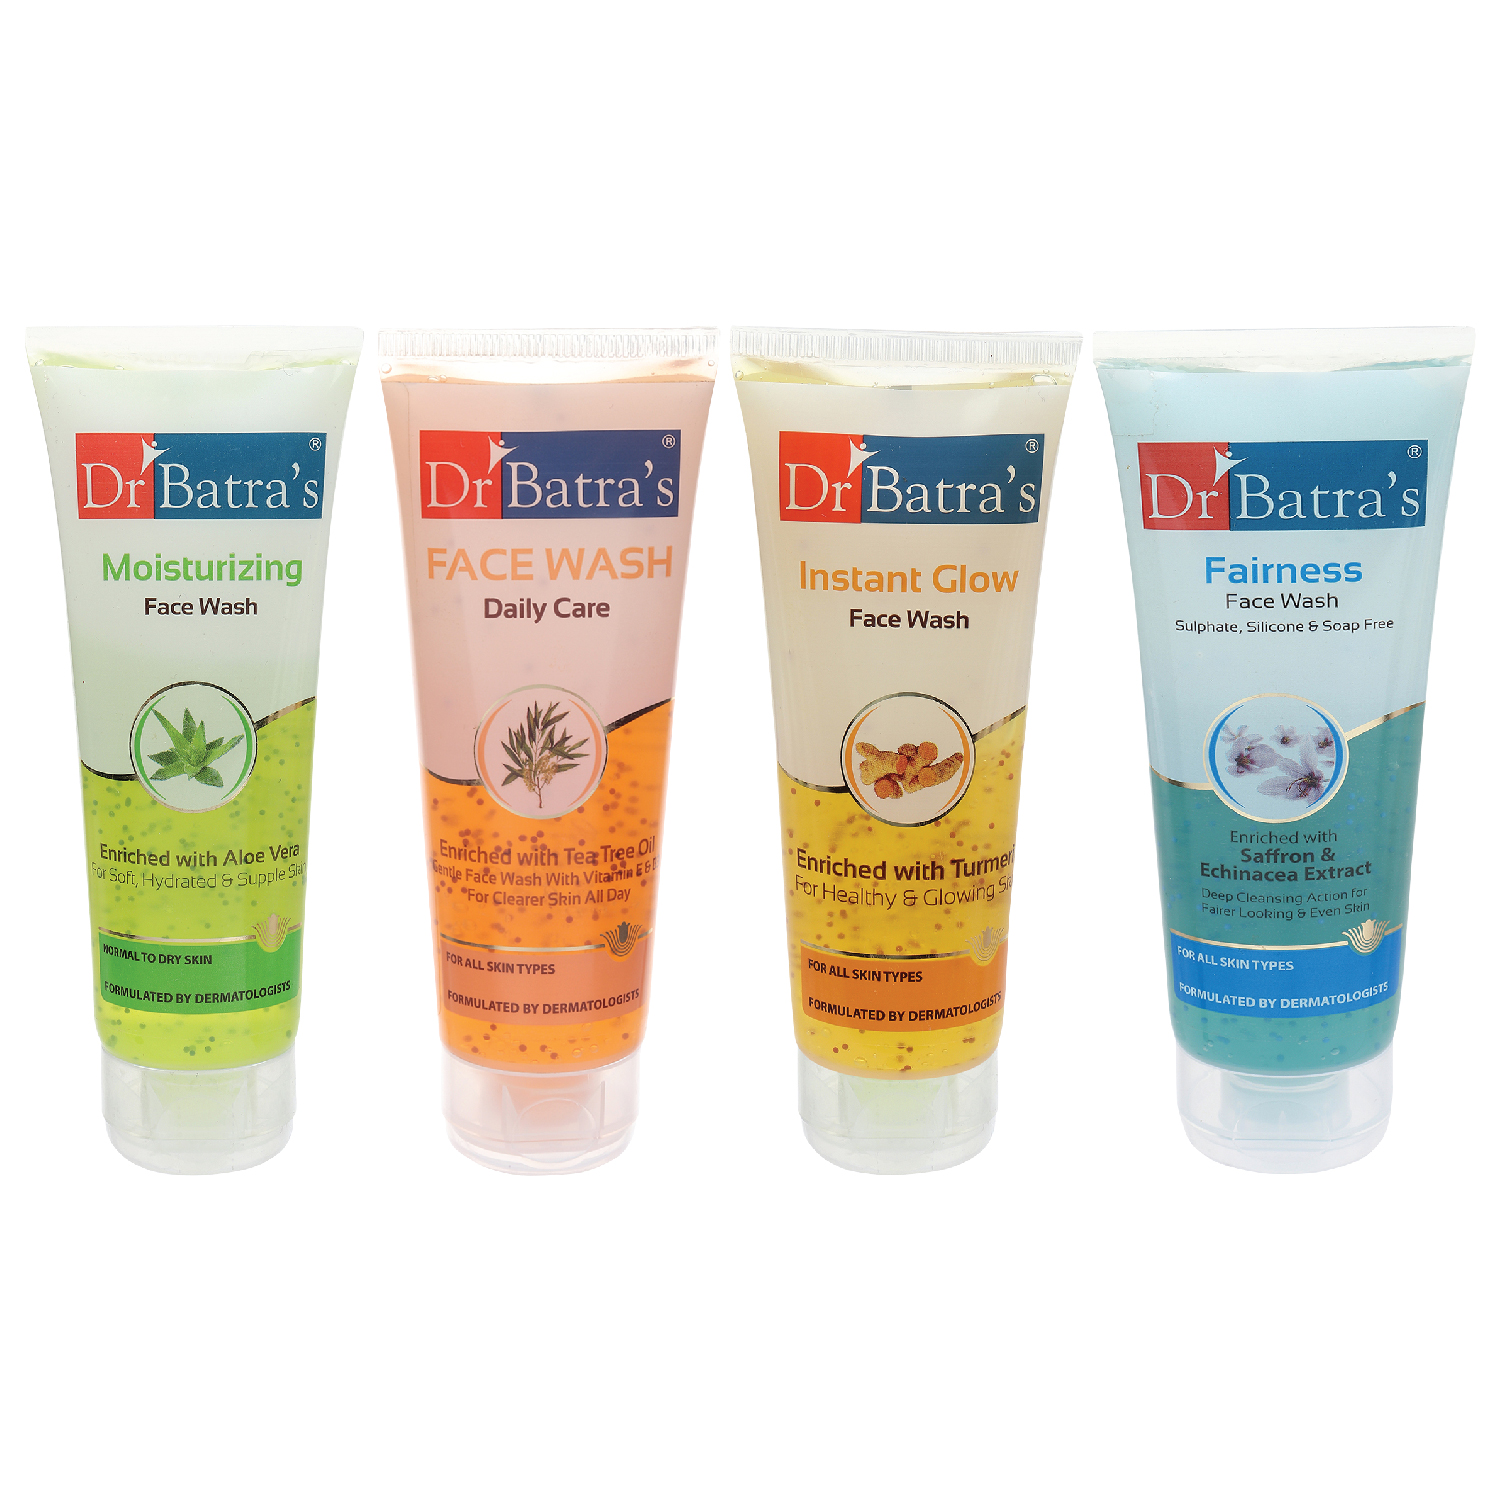 Dr Batra's | Dr Batra's Face Wash Daily Care - 100 gm, Face Wash Moisturizing - 100 gm, Face Wash Instant Glow - 100 gm and Fairness Face Wash 100 gm ( Pack Of 4 For Men And Women)